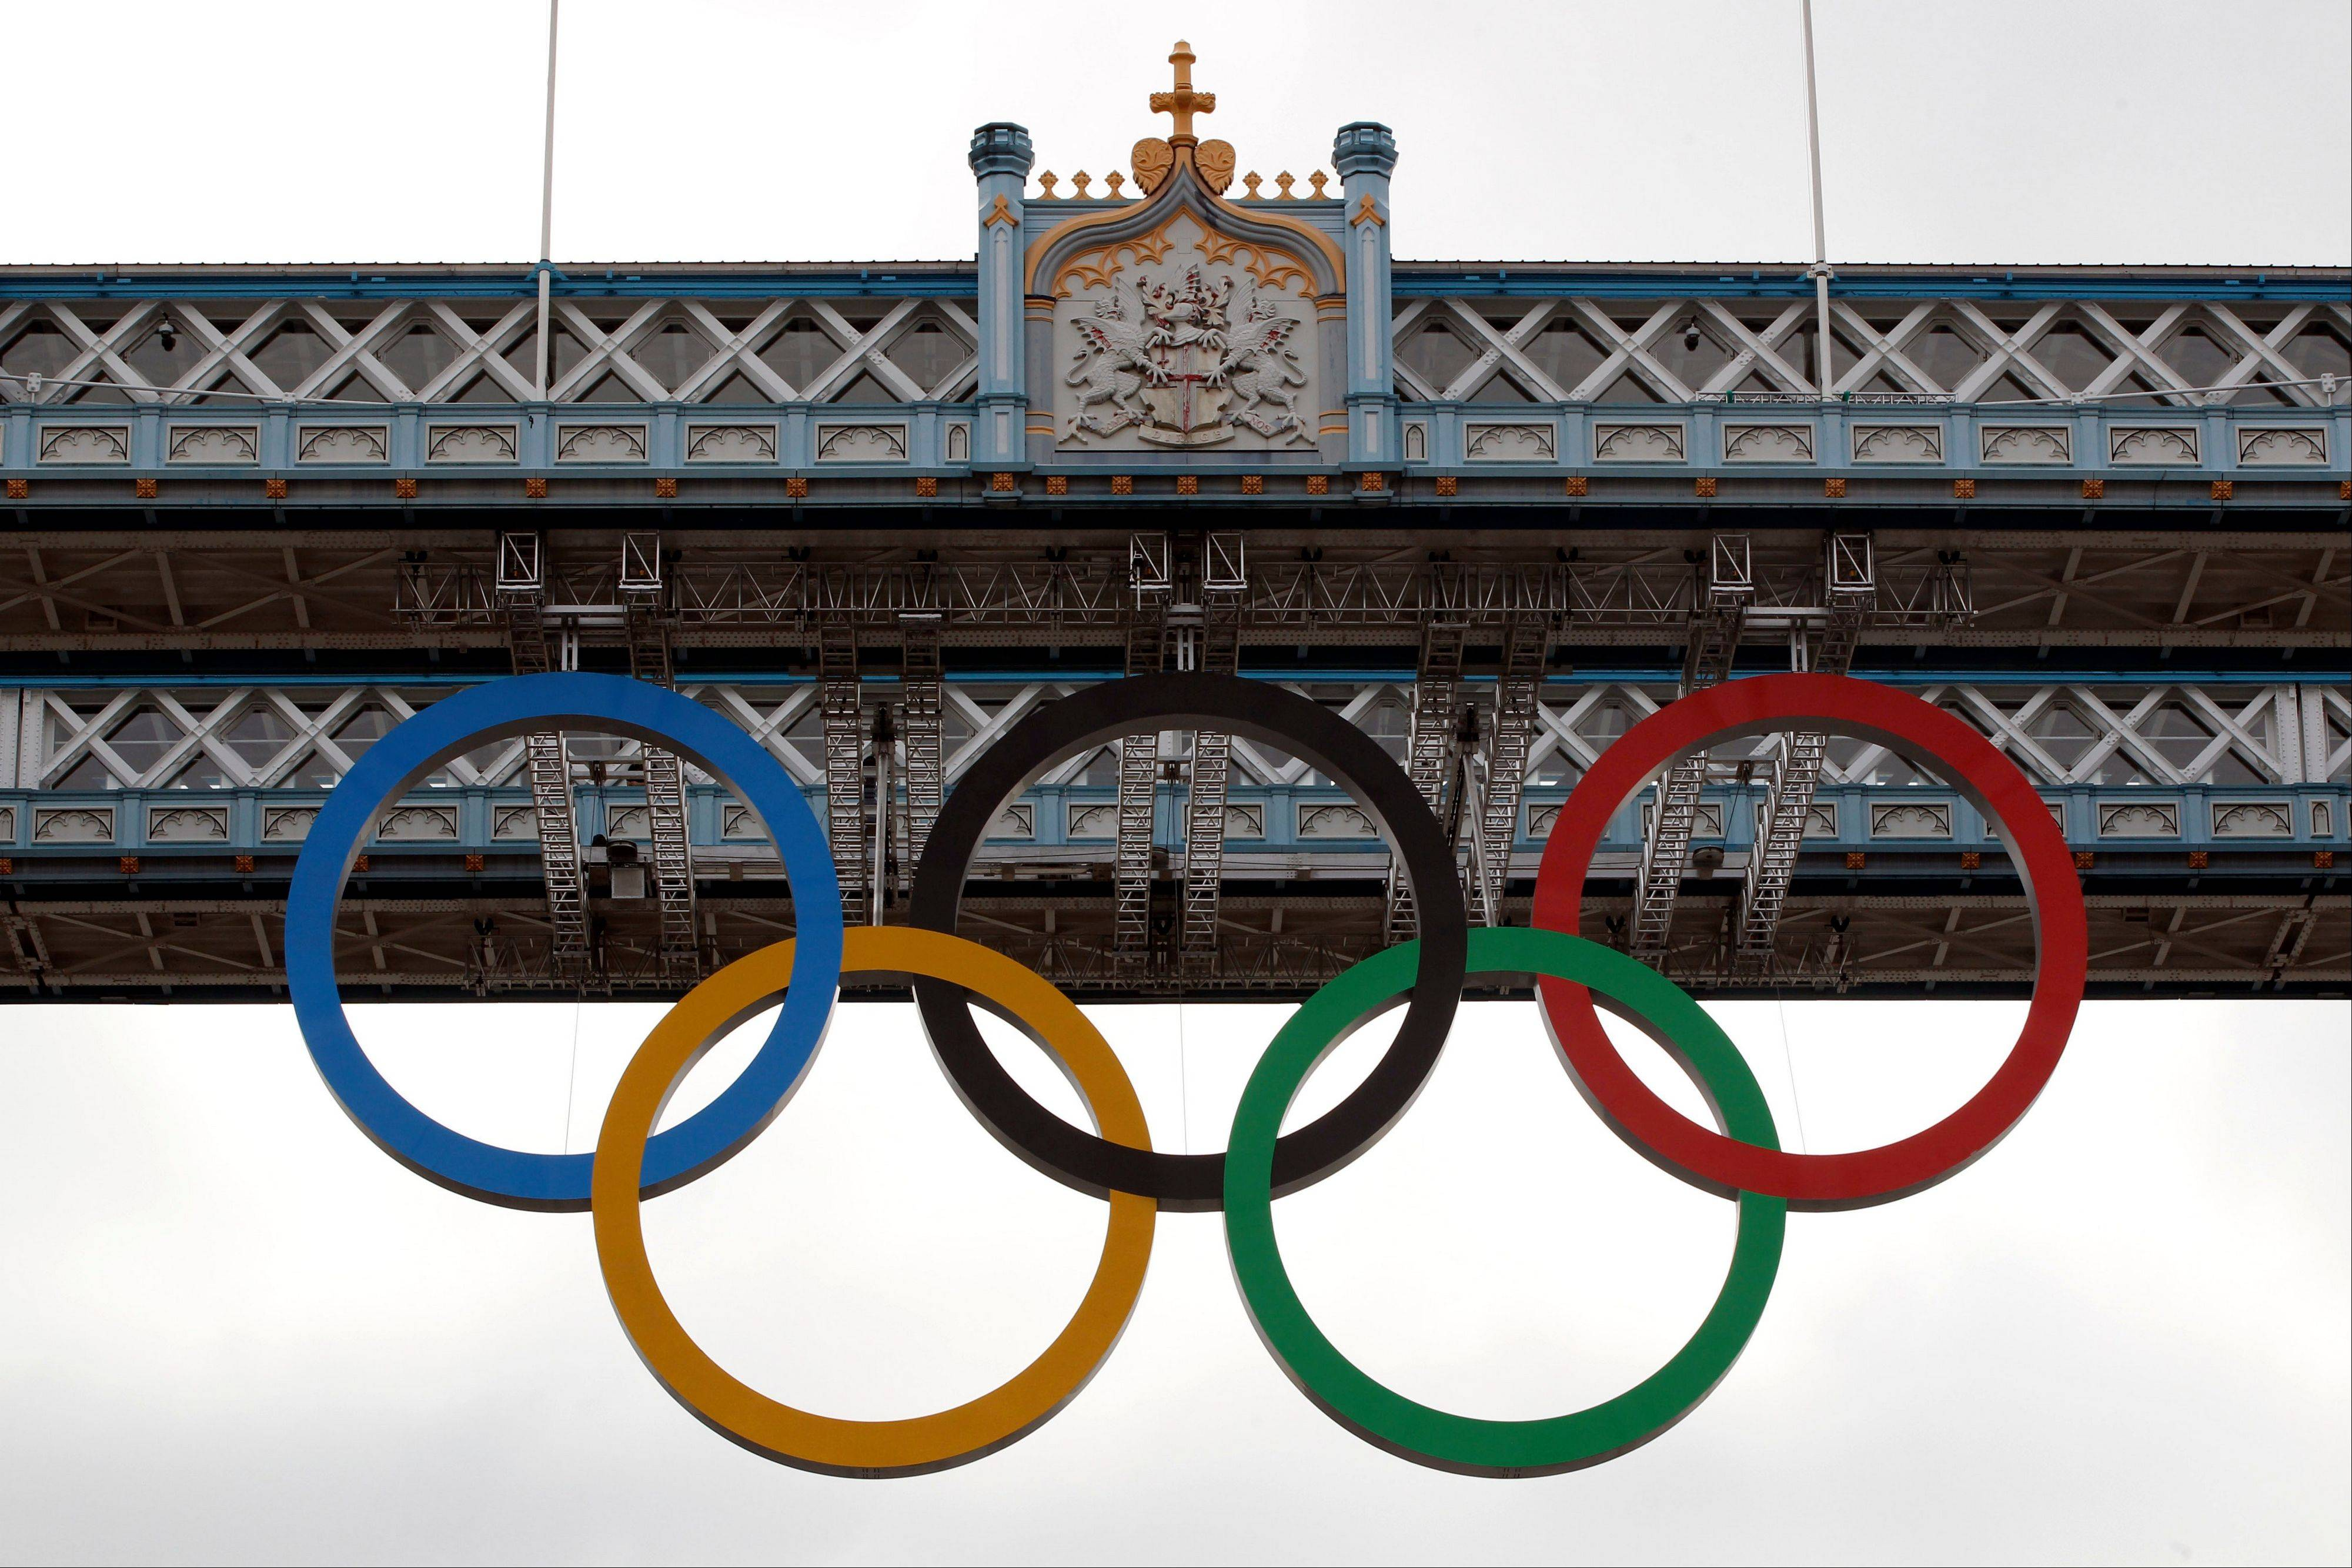 The Olympic rings hanging from the Tower Bridge in London are fully retractable to allow for tall ships to pass through the bridge.